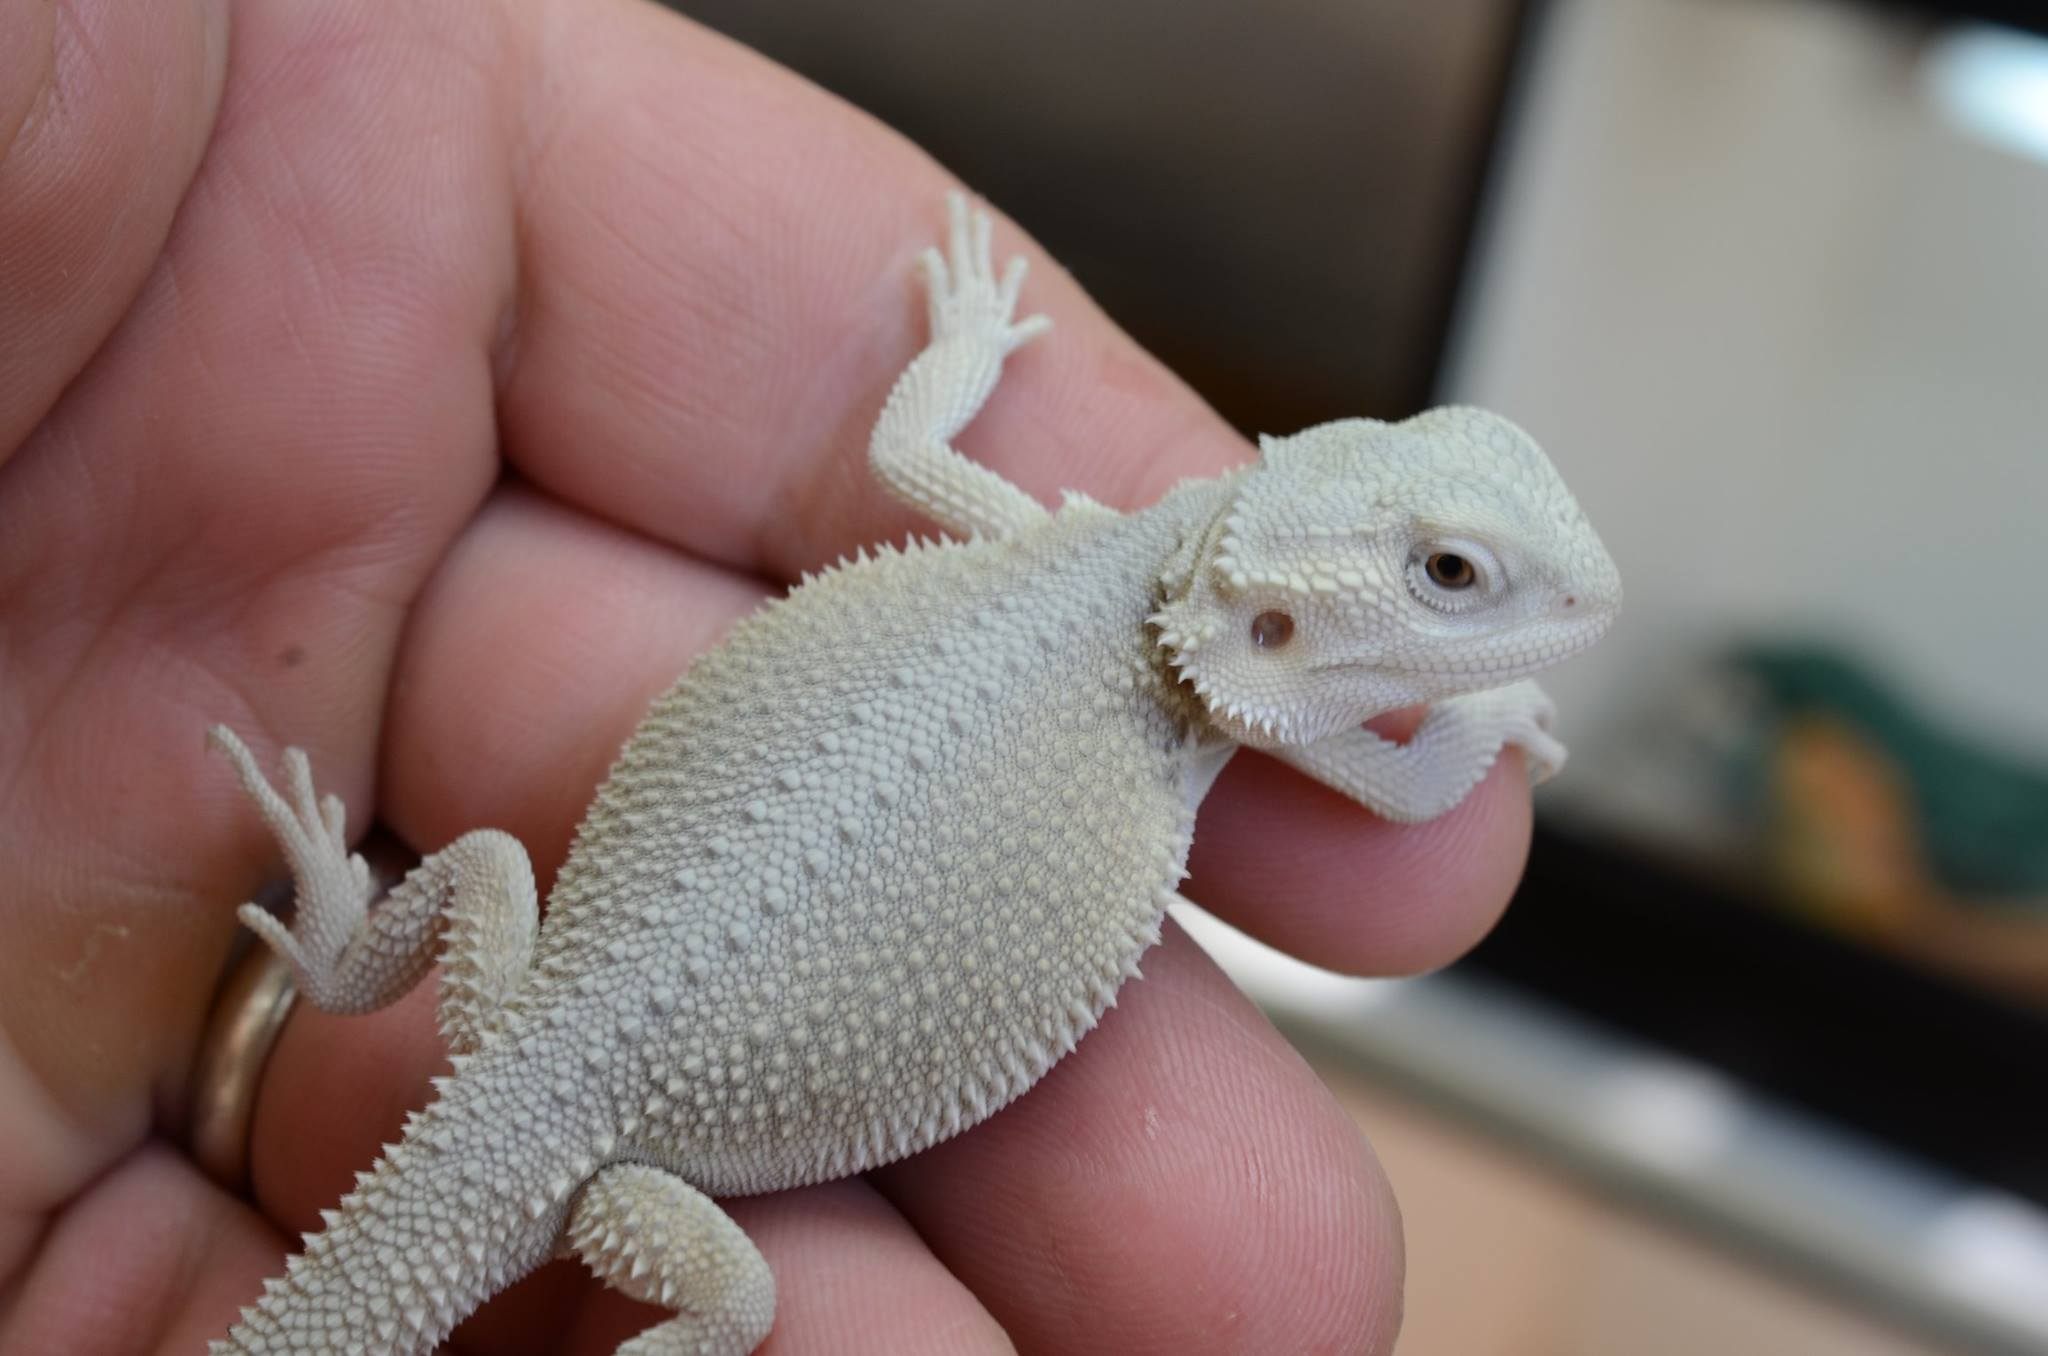 Bearded Dragon Photos | Bearded dragons for sale